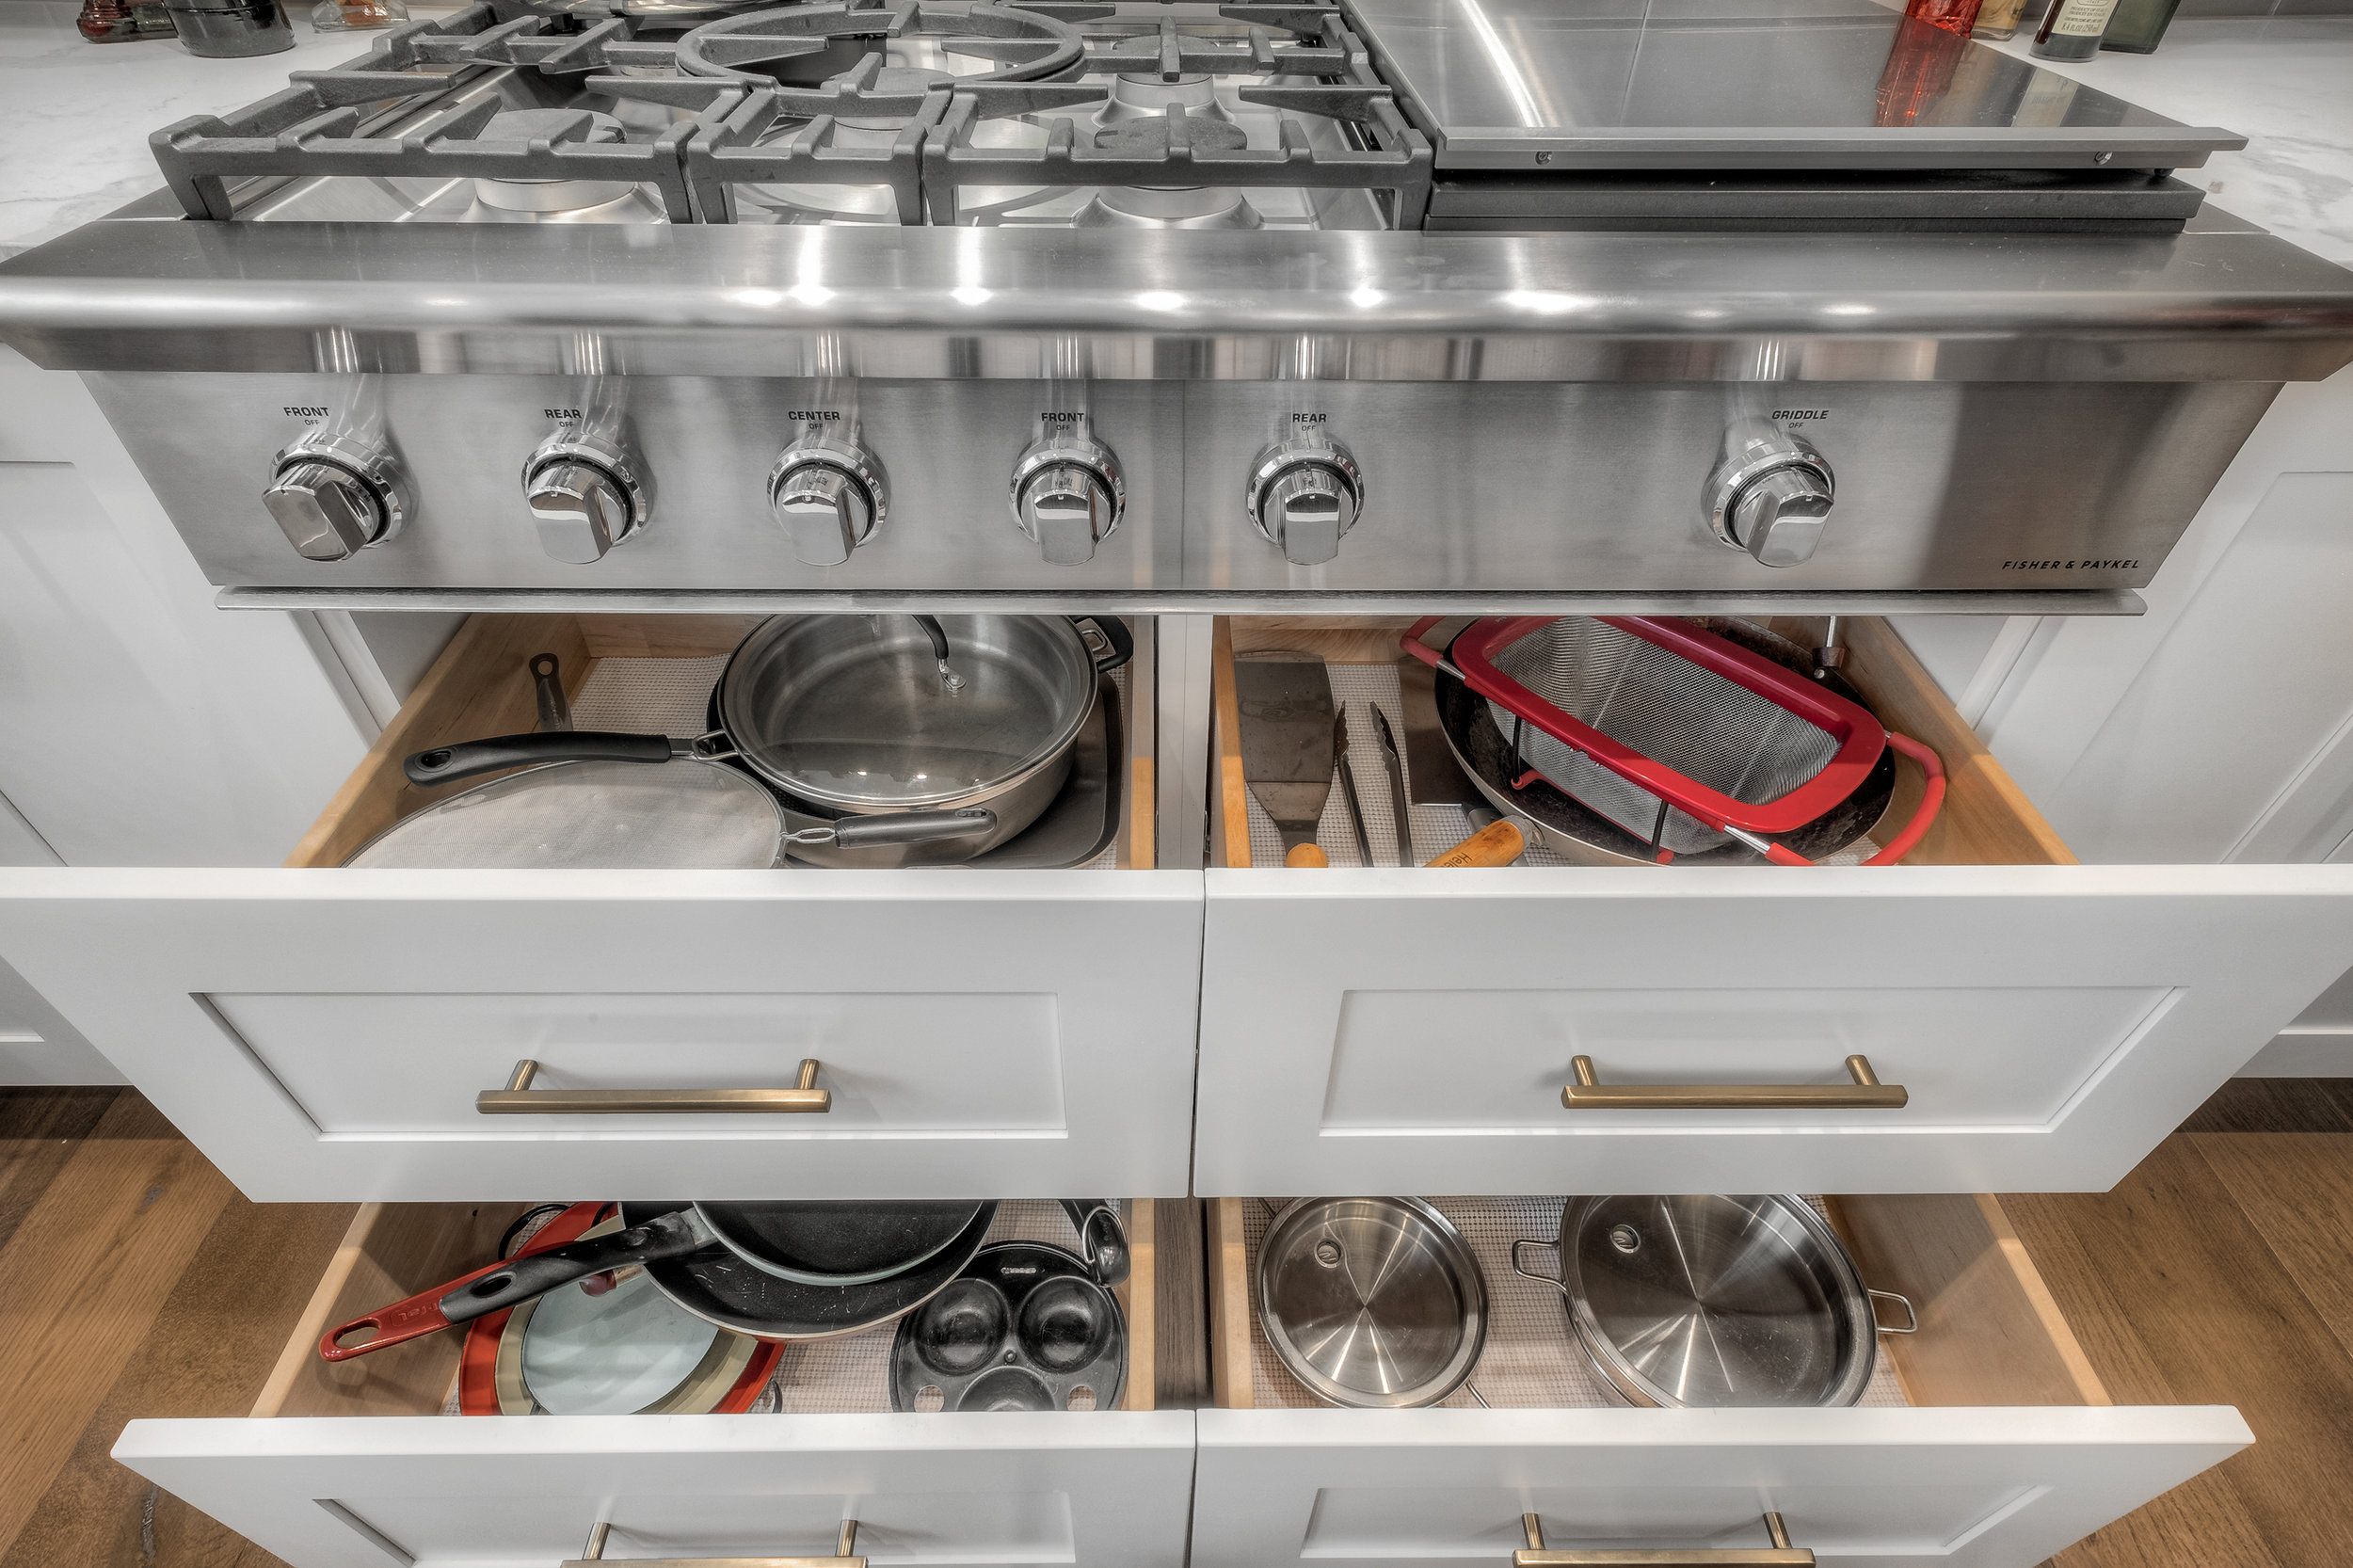 Cooktop Features